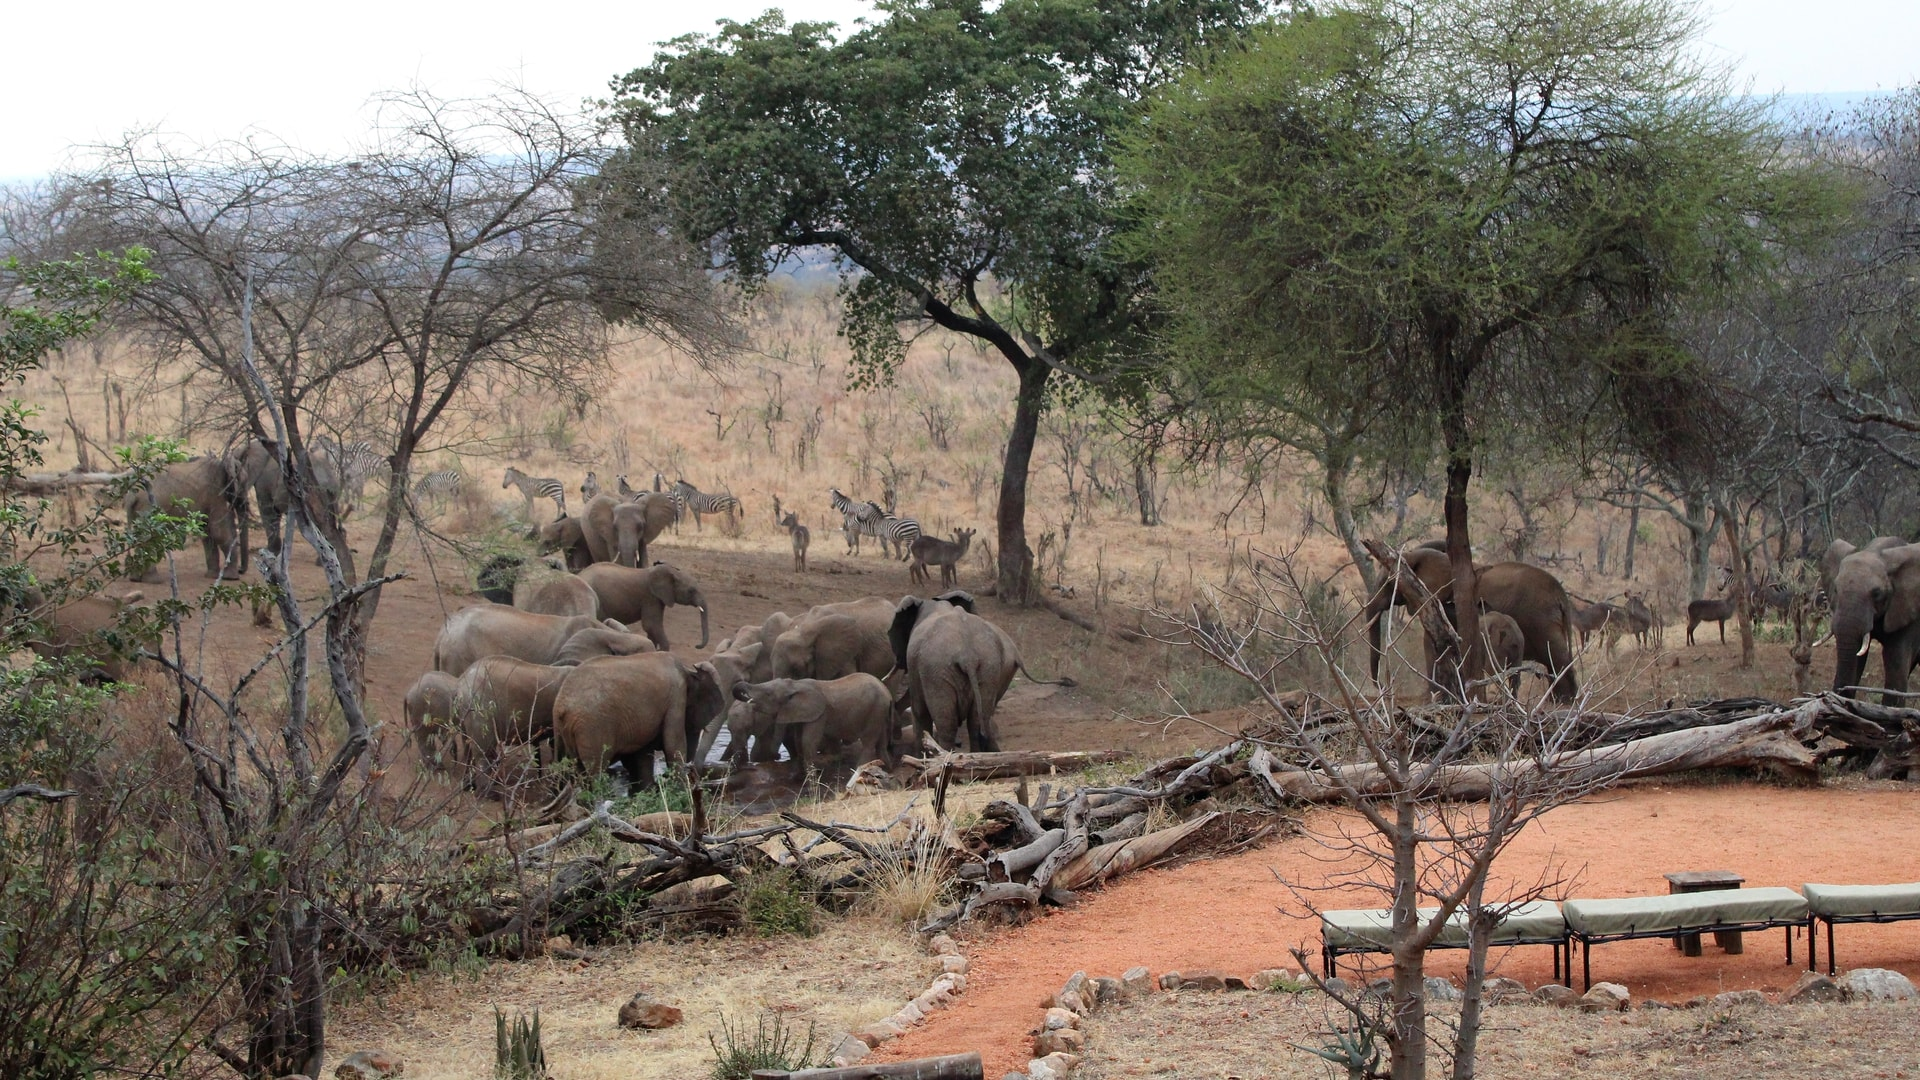 Elephants at the watering hole captured on the webcam at Tarangire Treetops, Elewana Collection webcam